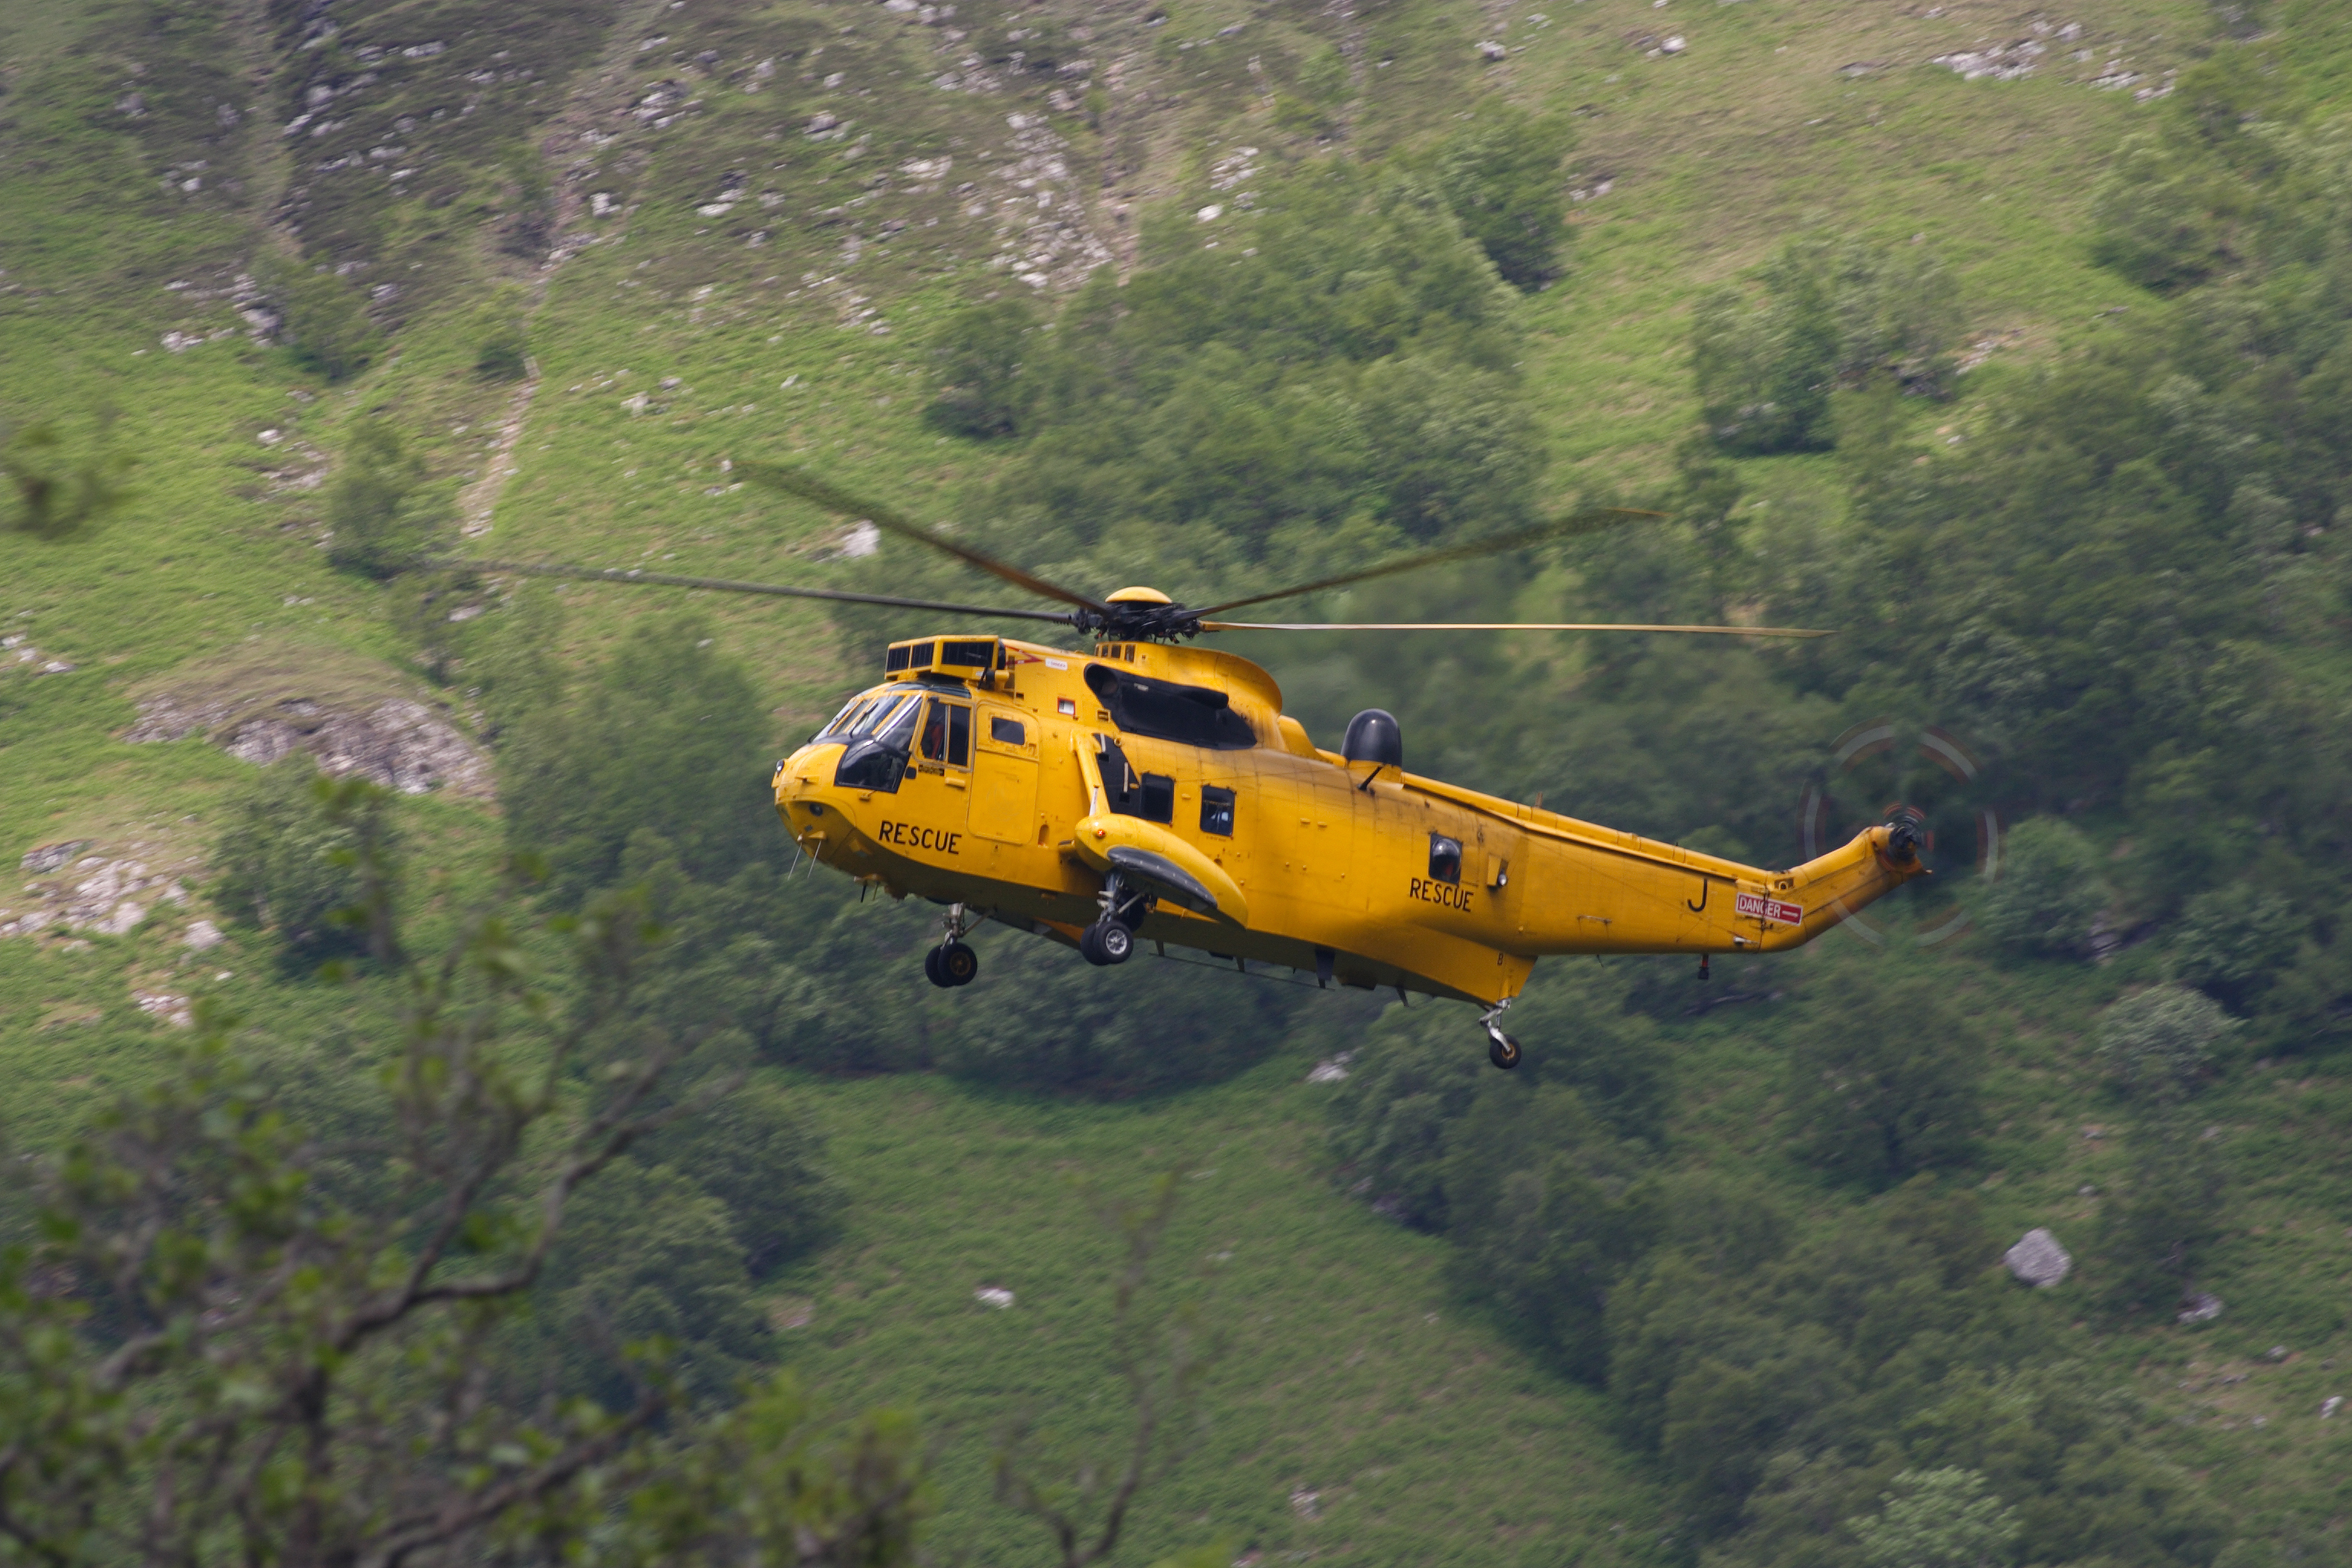 RAF Mountain rescue helicopter flying in the Scottish Moutains (Getty Images/iStock)